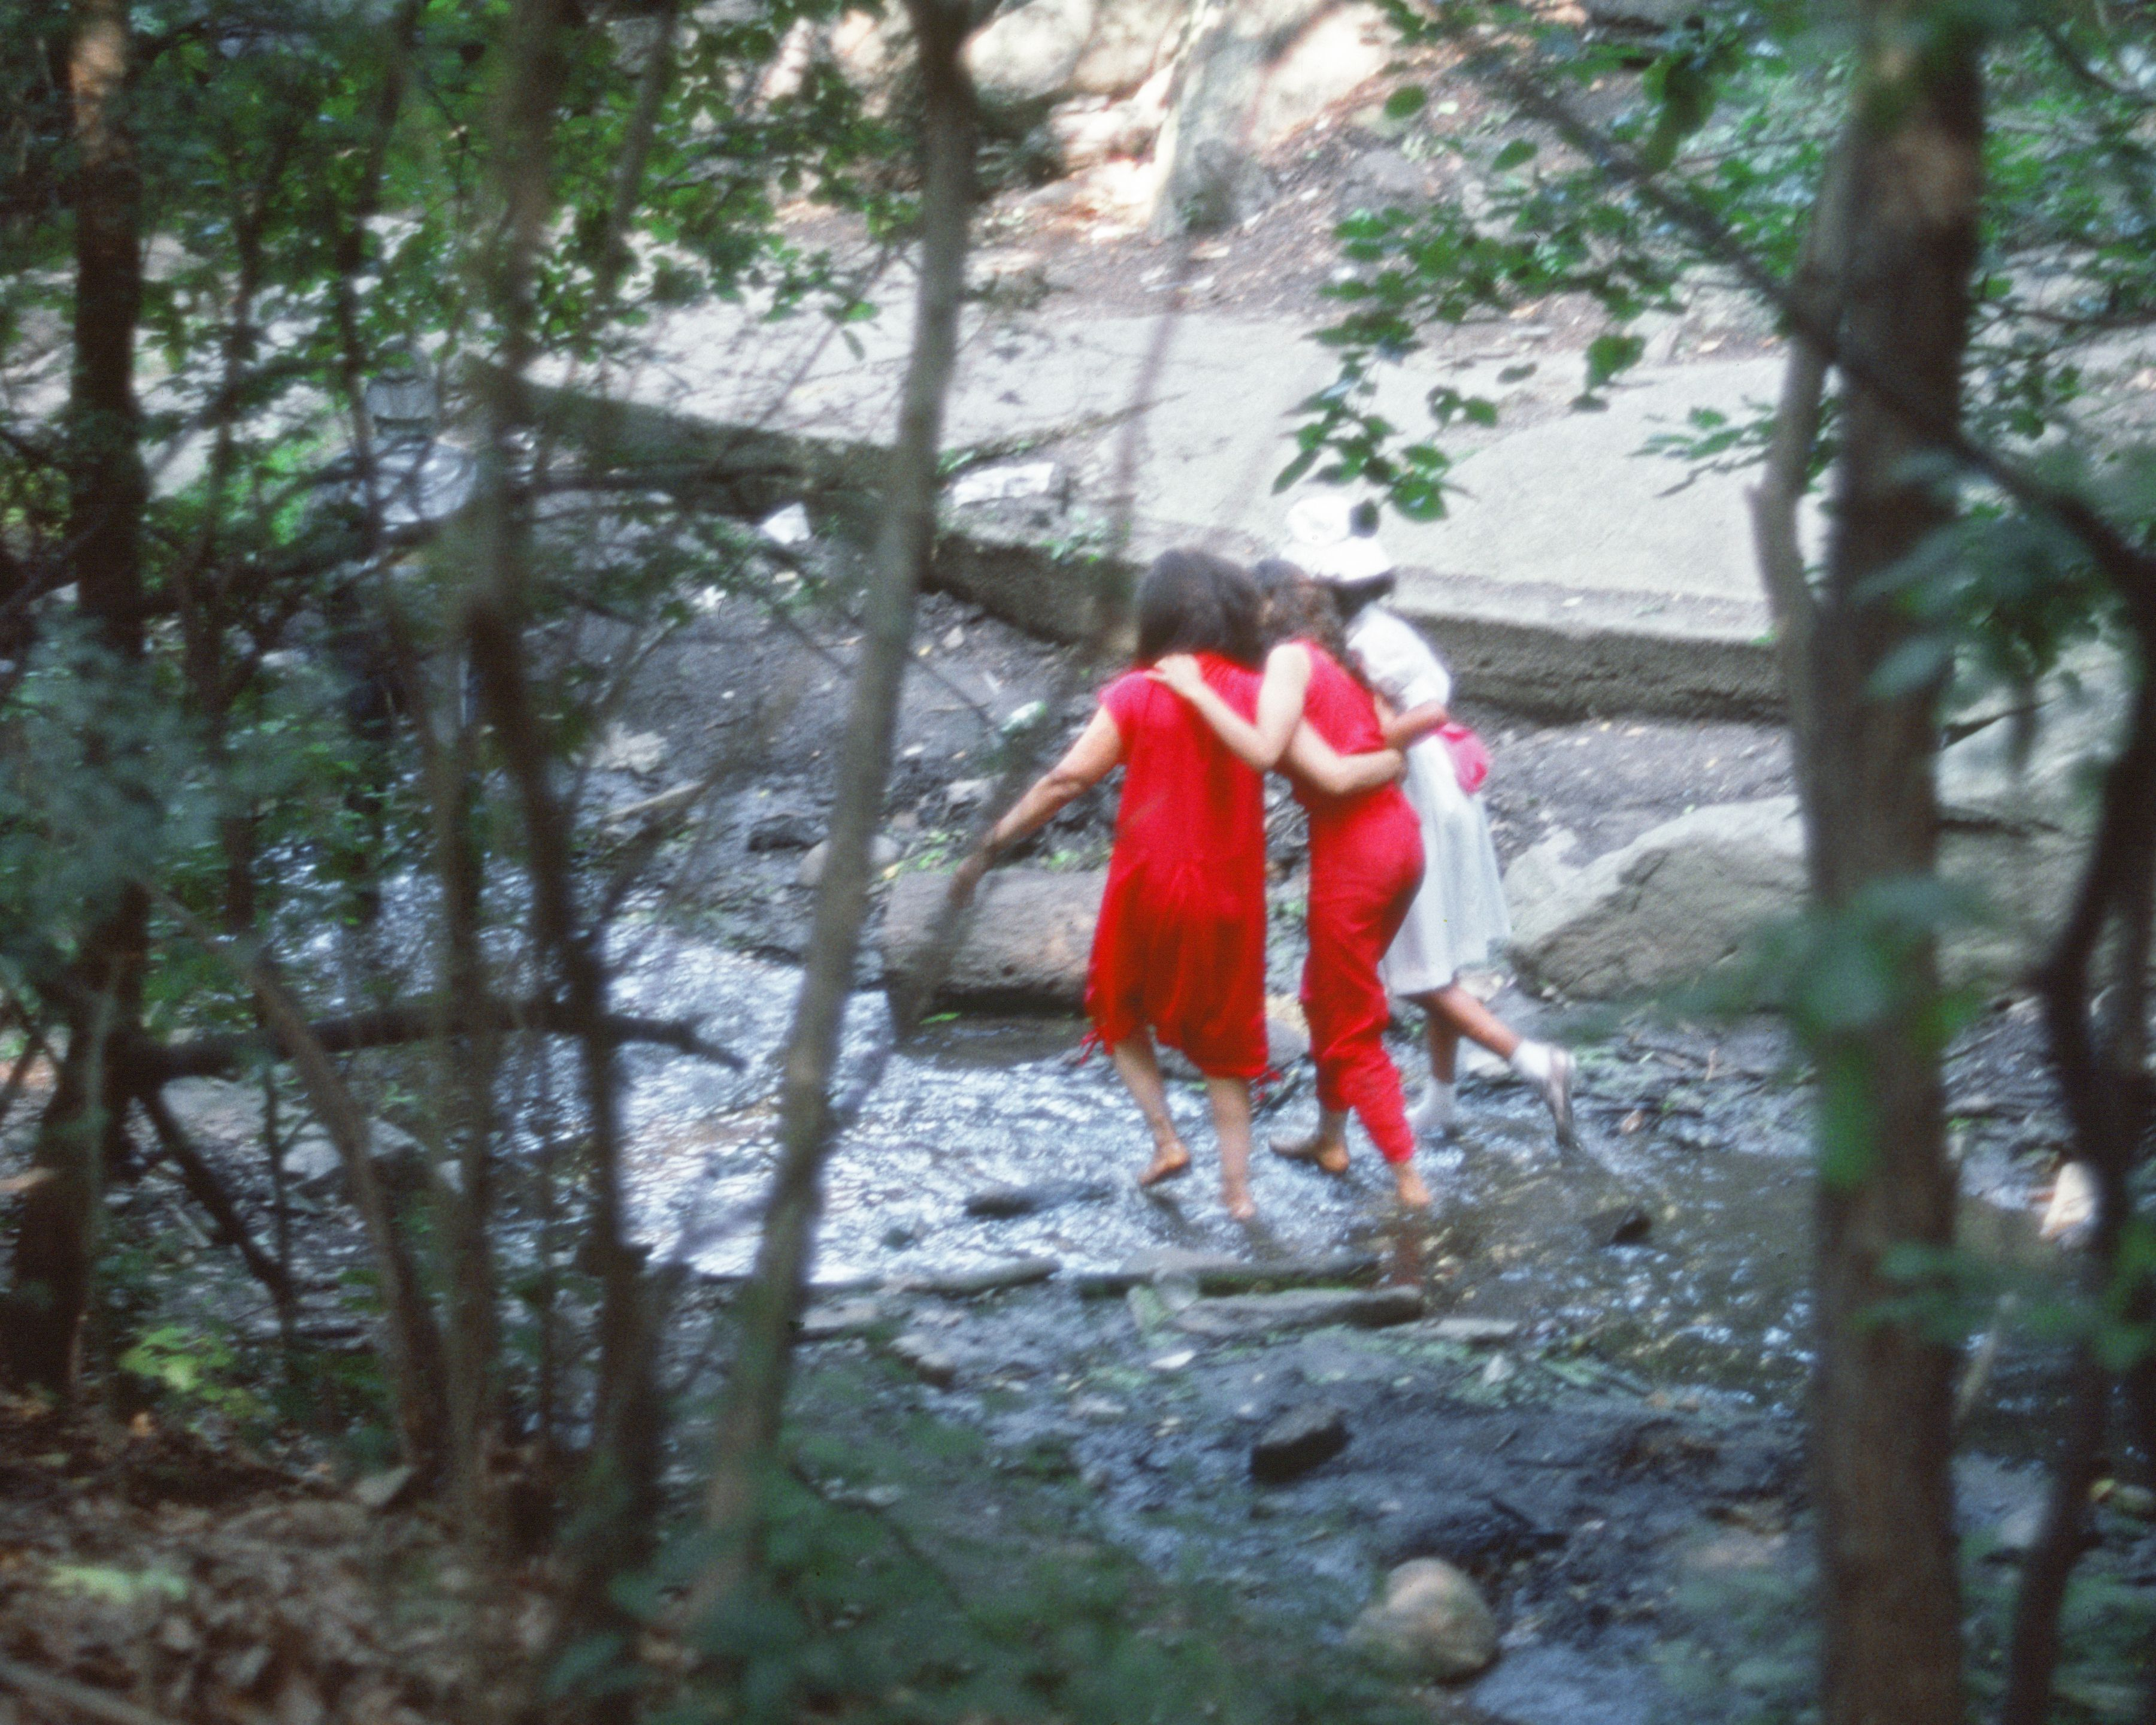 Rivers, First Draft: The Woman in Red, the Teenager in Magenta, and the Little Girl in Pink Sash wade the stream, 1982/2015, Digital C-print from Kodachrome 35mm slides in 48 parts, 16h x 20w in (40.64h x 50.80w cm)